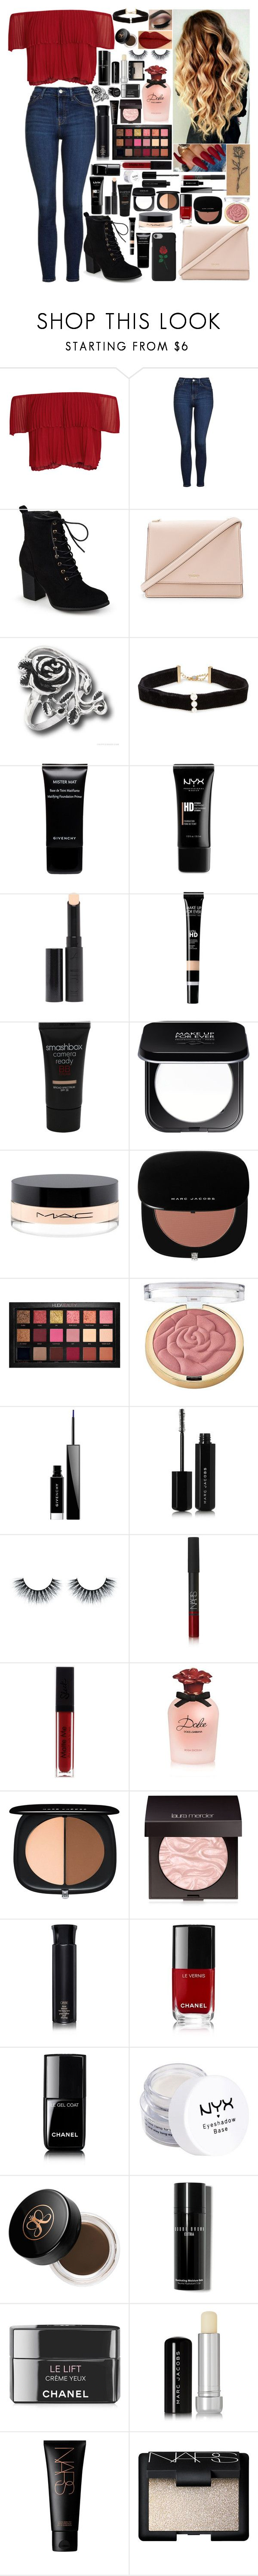 """""""English Rose"""" by girlygirlprincess ❤ liked on Polyvore featuring Keepsake the Label, Topshop, Journee Collection, Kate Spade, Anissa Kermiche, Givenchy, NYX, Surratt, Smashbox and MAC Cosmetics"""